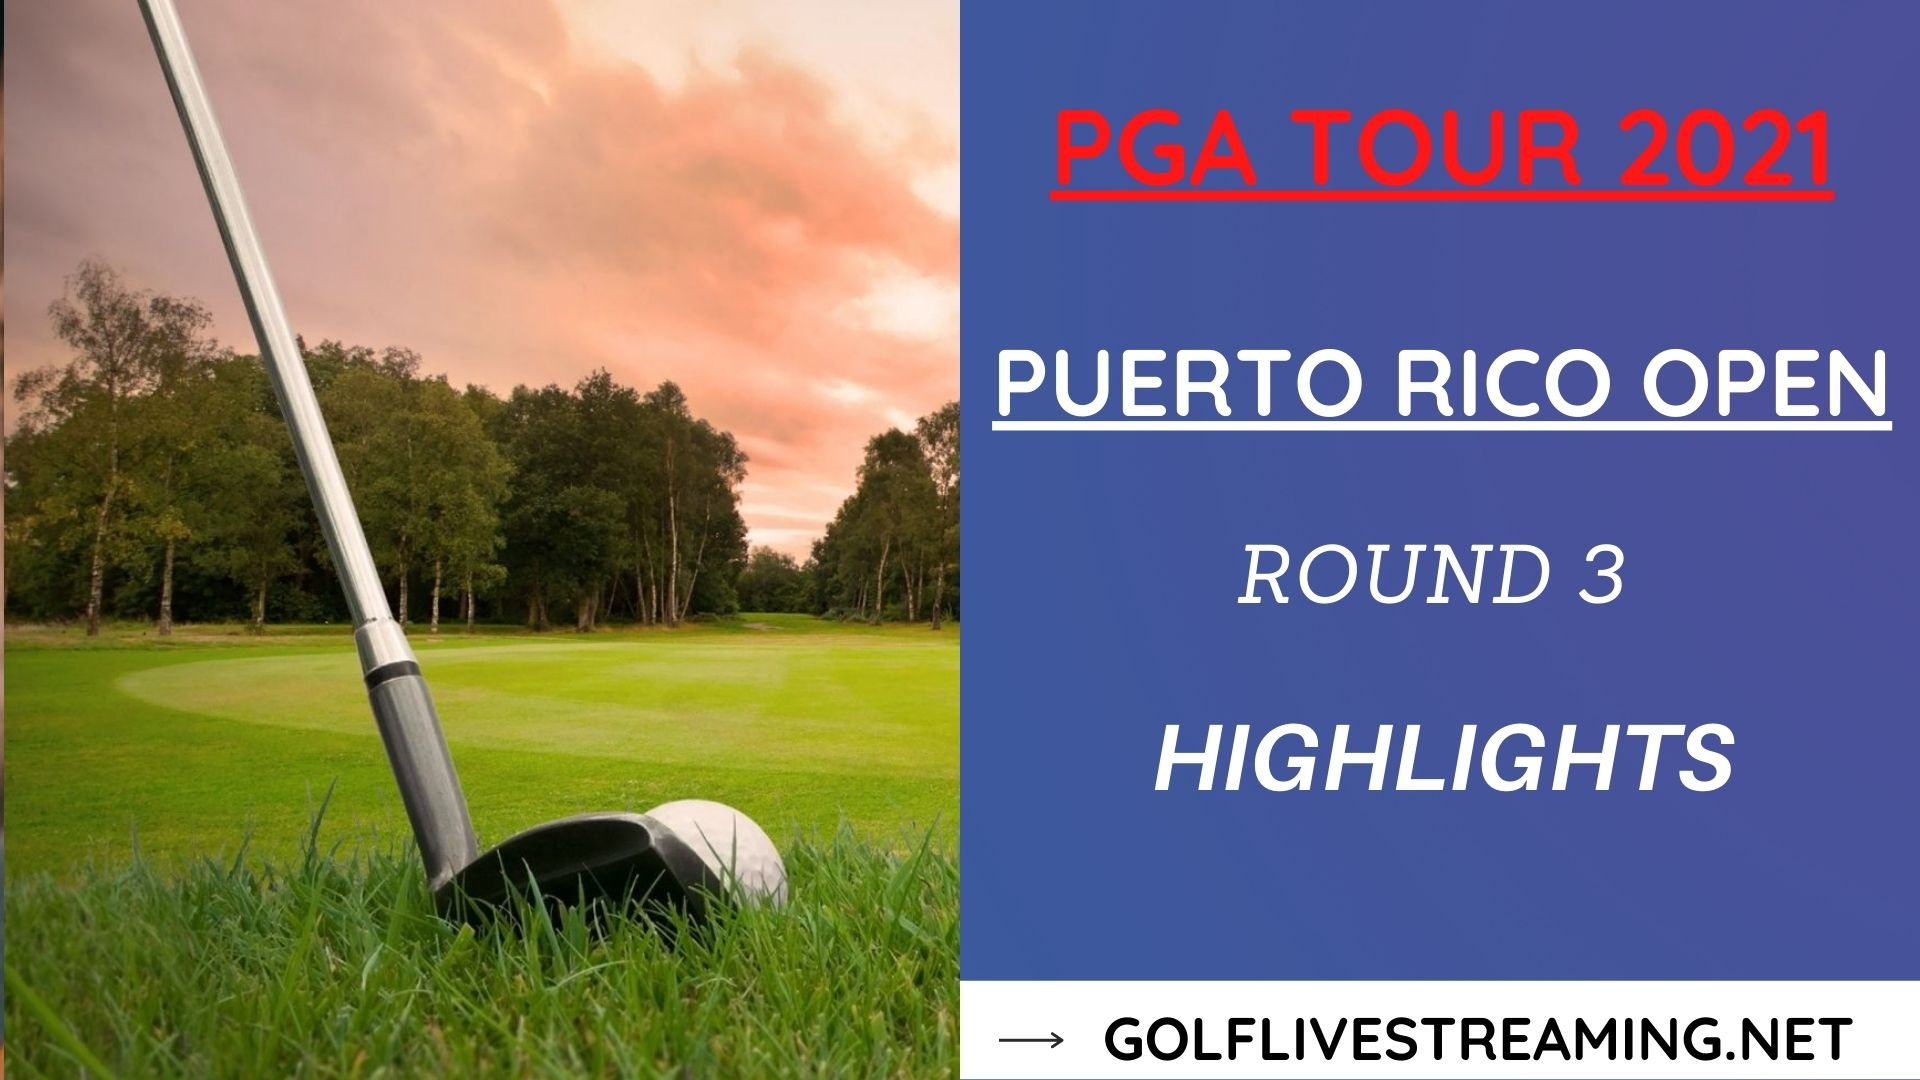 Puerto Rico Open Round 3 Highlights 2021 PGA Tour